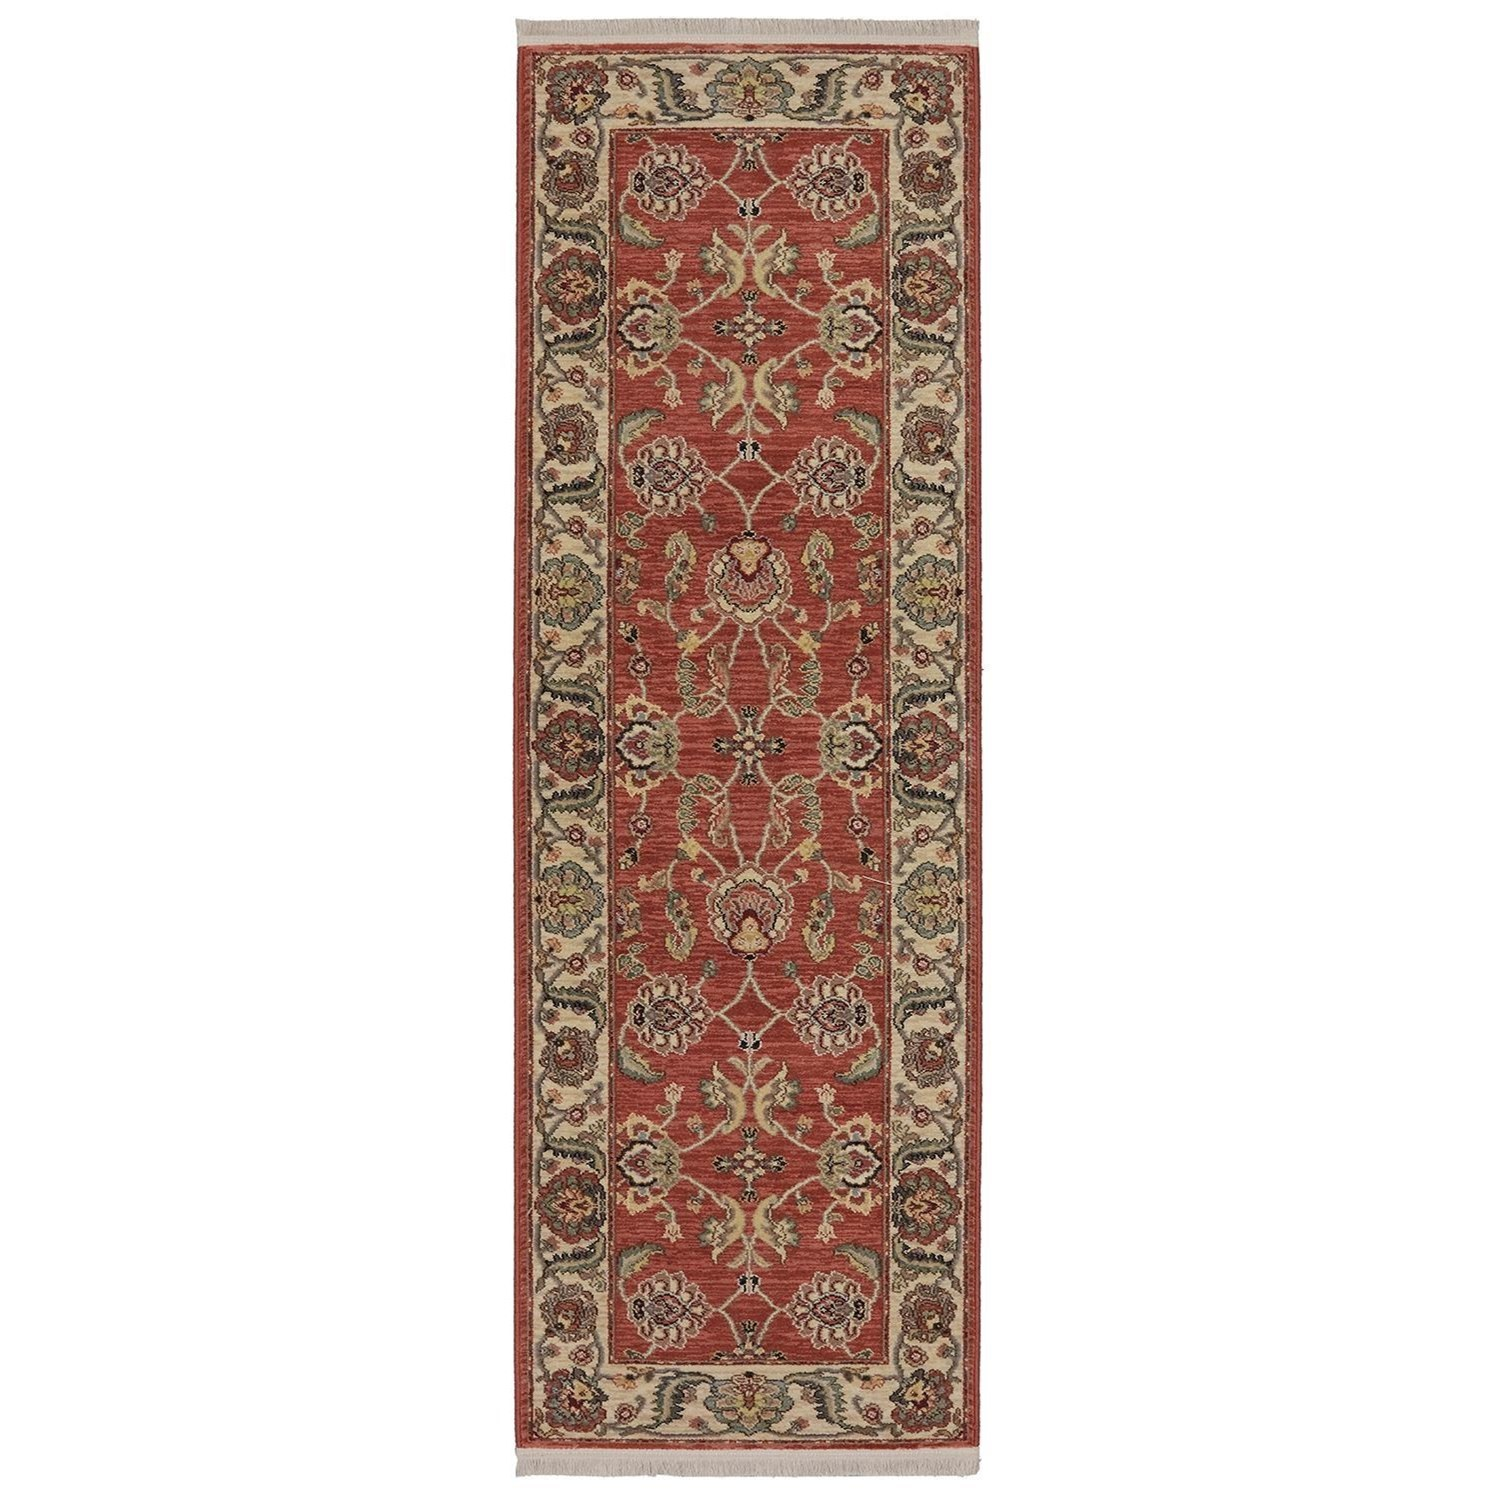 Karastan Rugs Ashara 2'6x8' Agra Red Rug Runner - Item Number: 00549 15002 030096